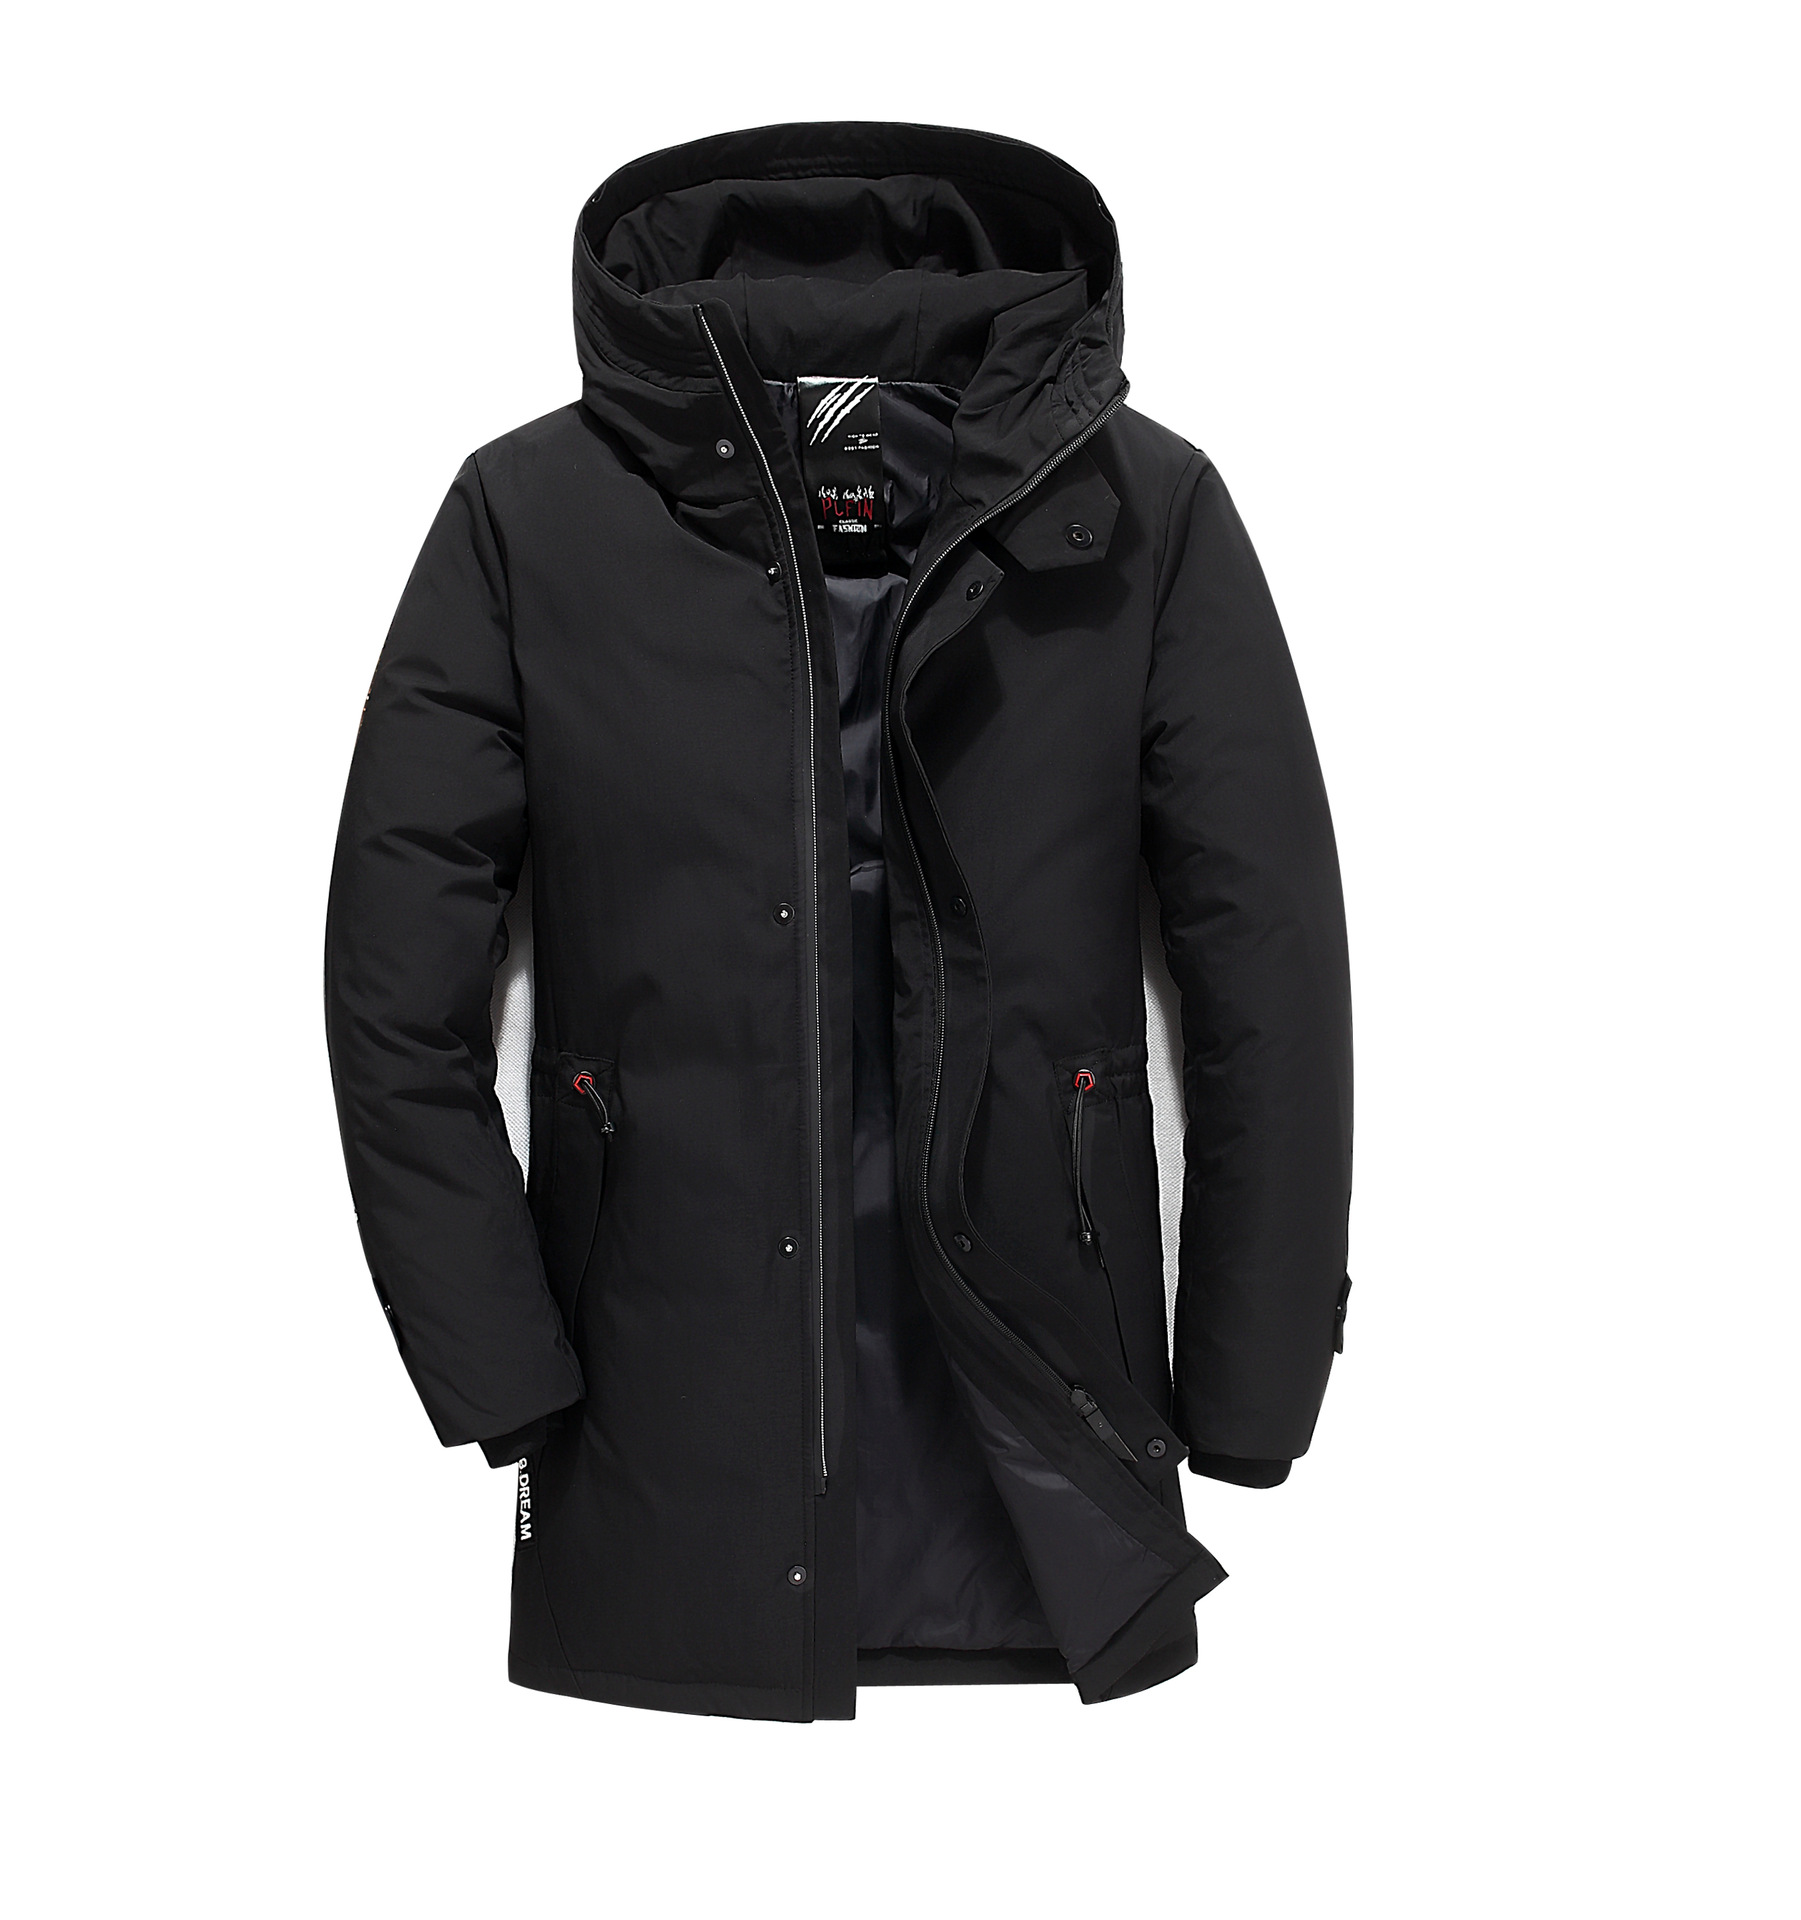 Men's Long Down Jacket 2018 New Casual Middle-aged Men's Down Jacket High-end Thickening Hooded Men's Coat Men Fashions